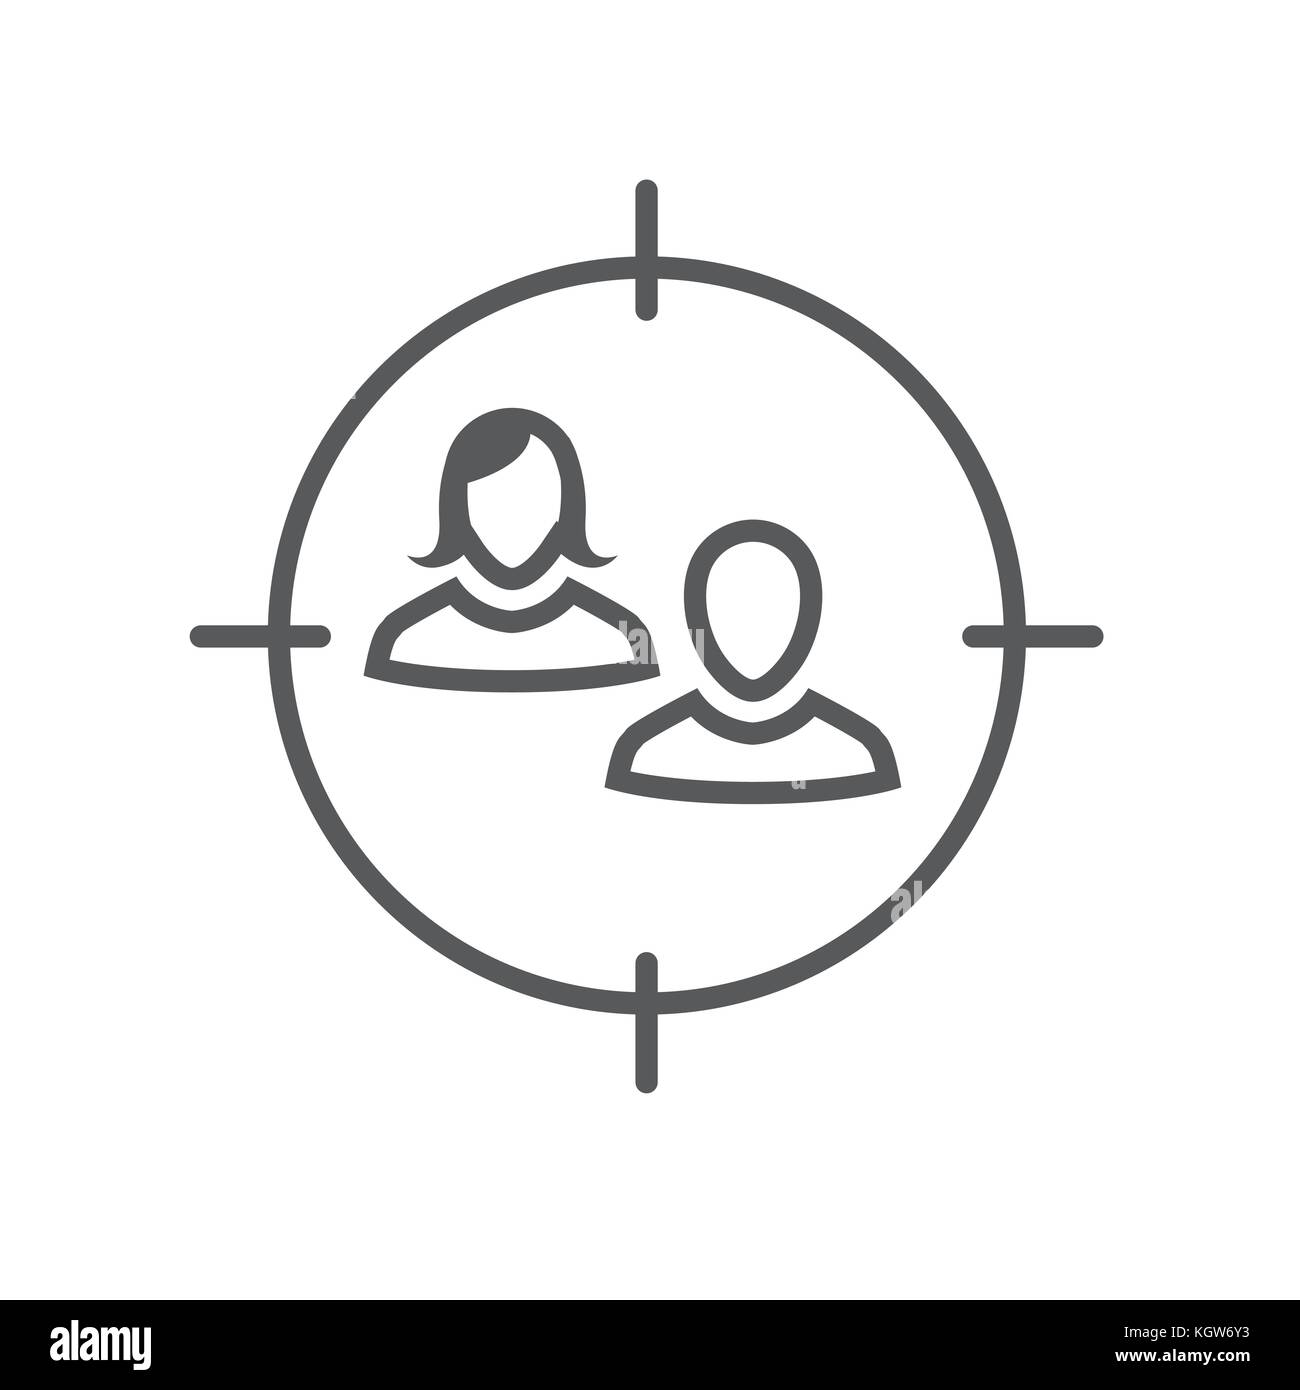 Target market icon with people and target stock vector art target market icon with people and target buycottarizona Image collections